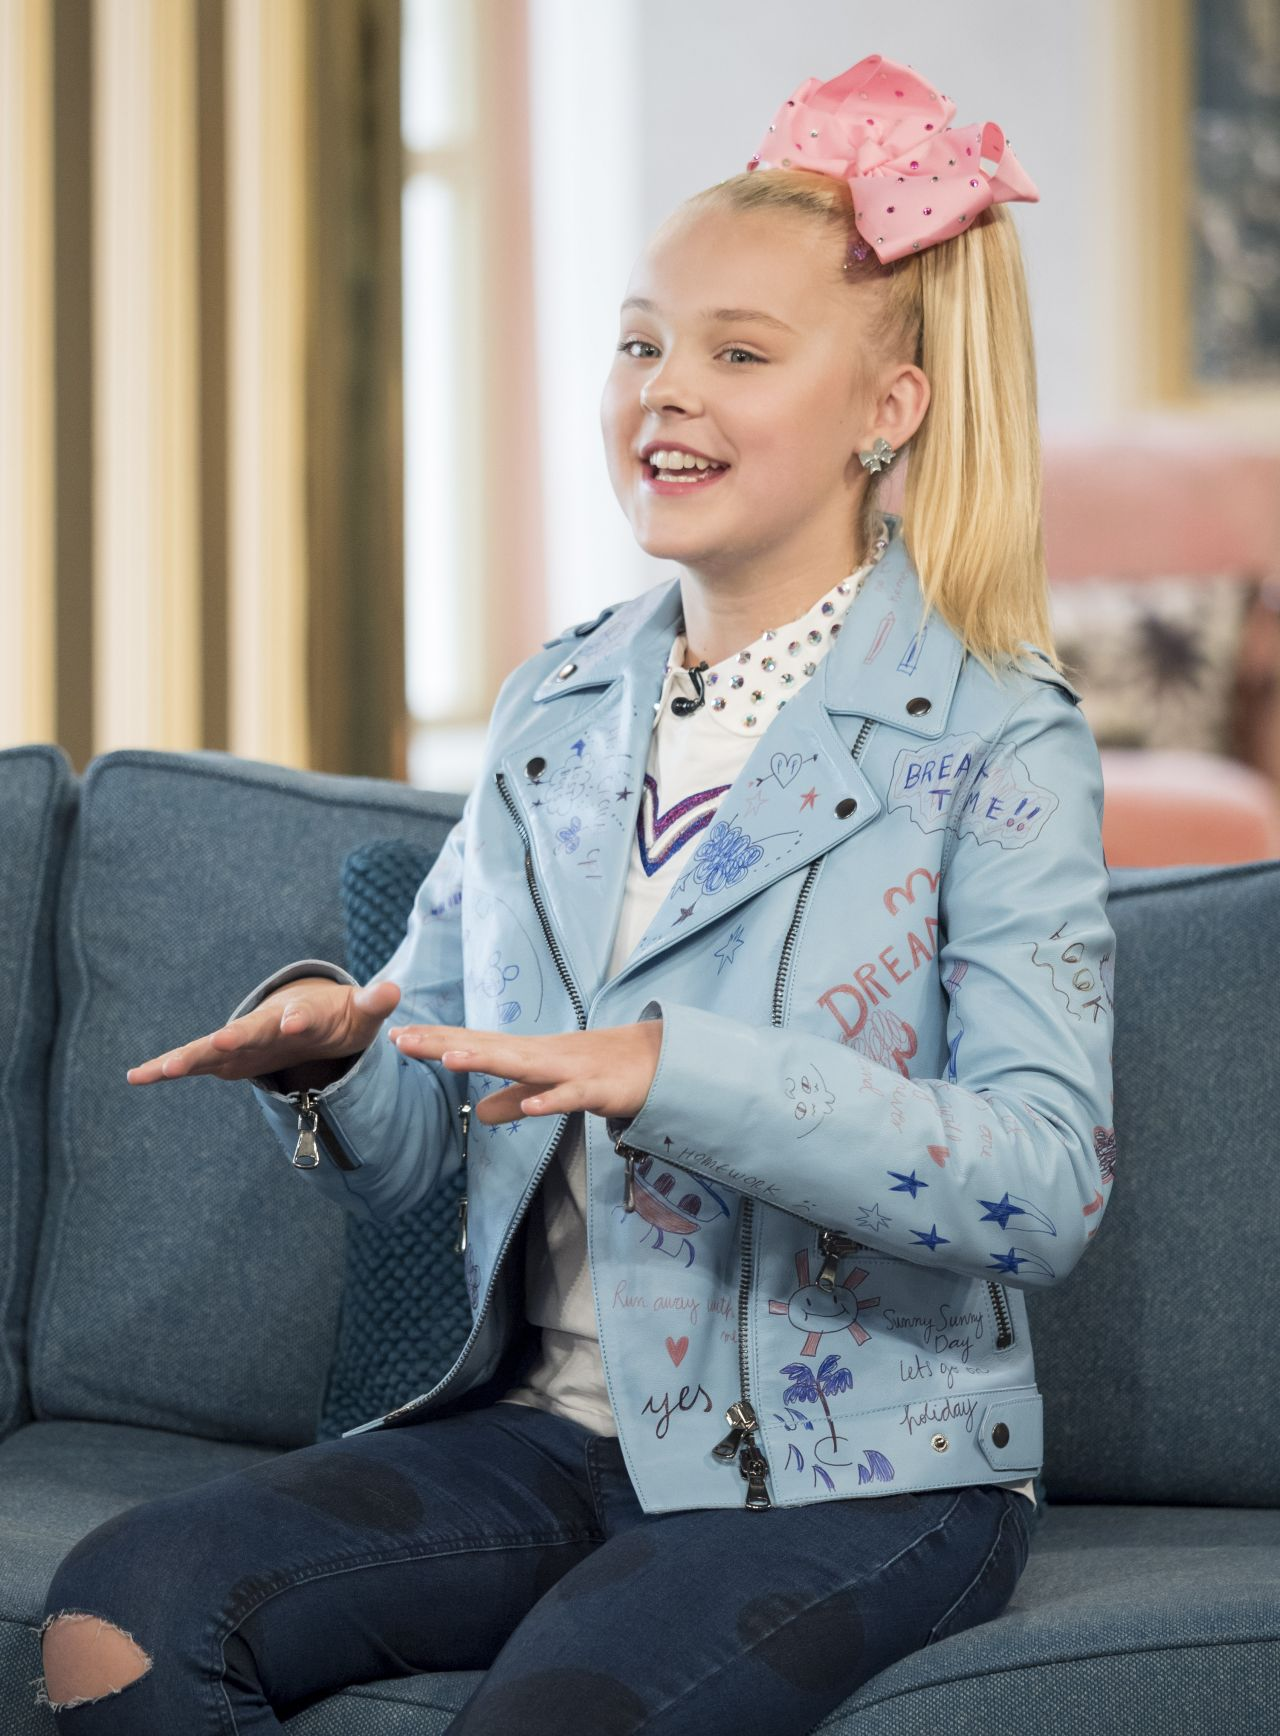 JoJo Siwa Appeared On This Morning TV Show In London 0727